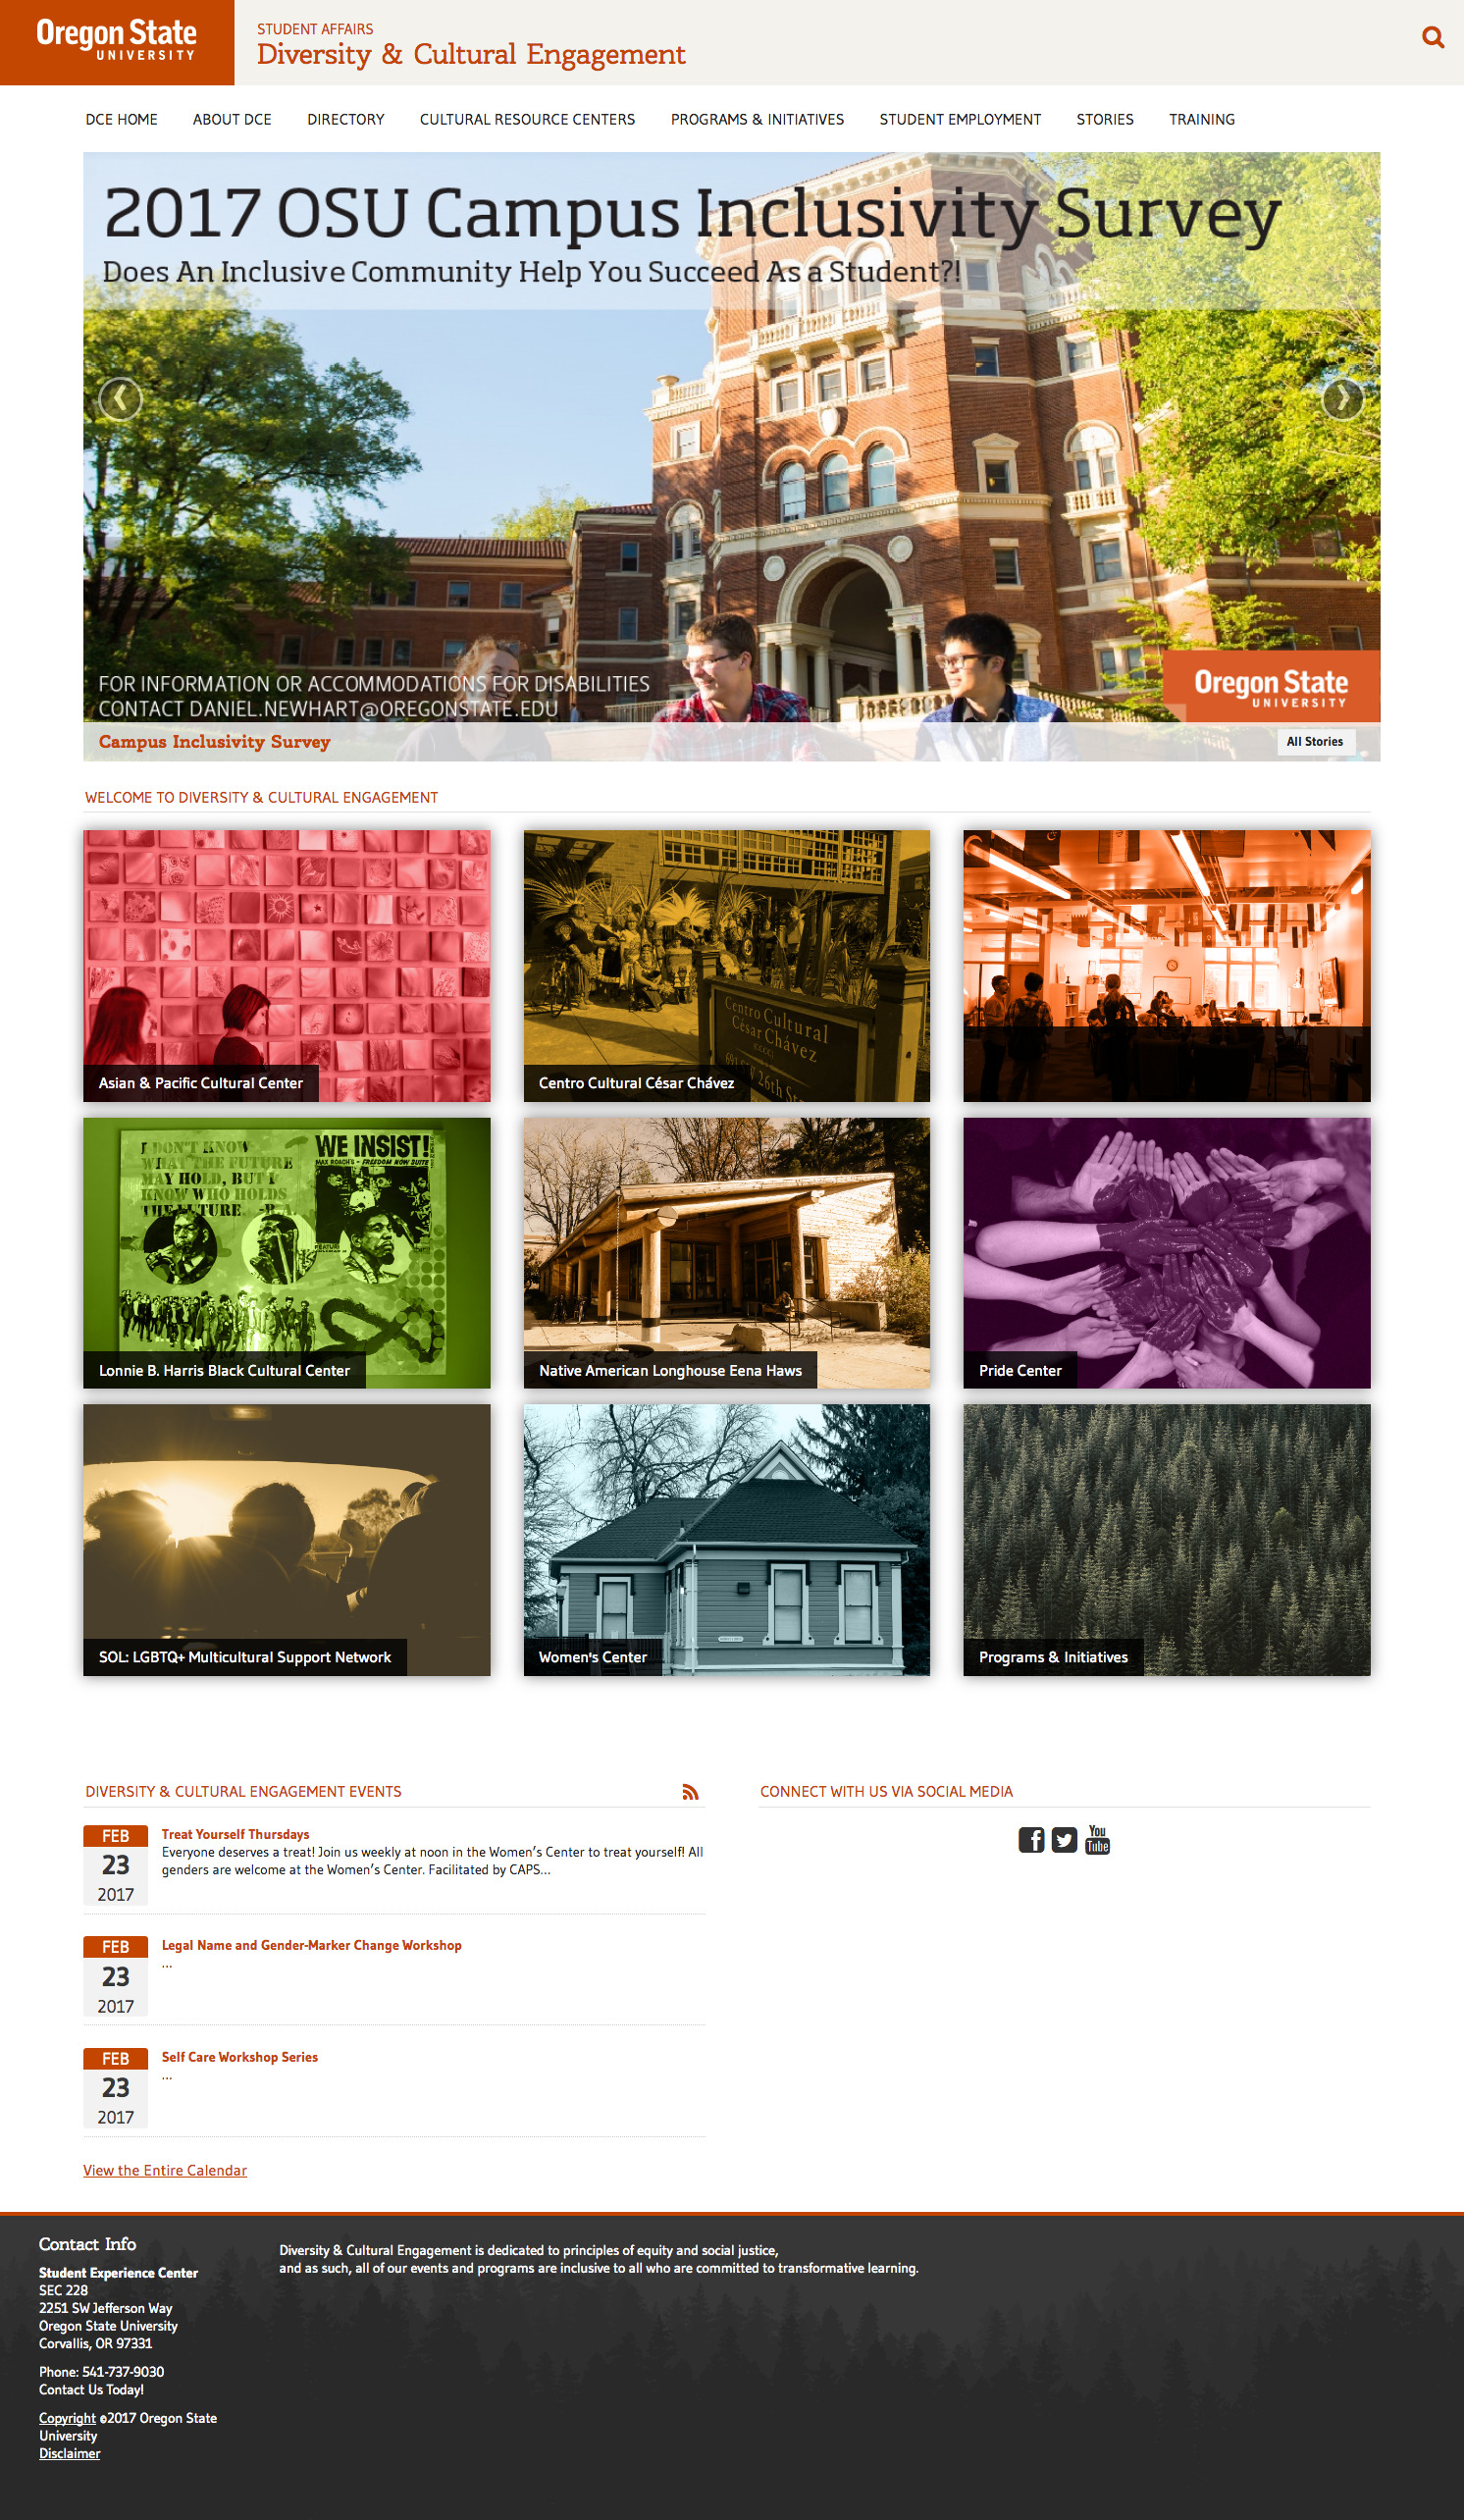 Oregon State University Diversity and Cultural Engagement Home Page - 2017